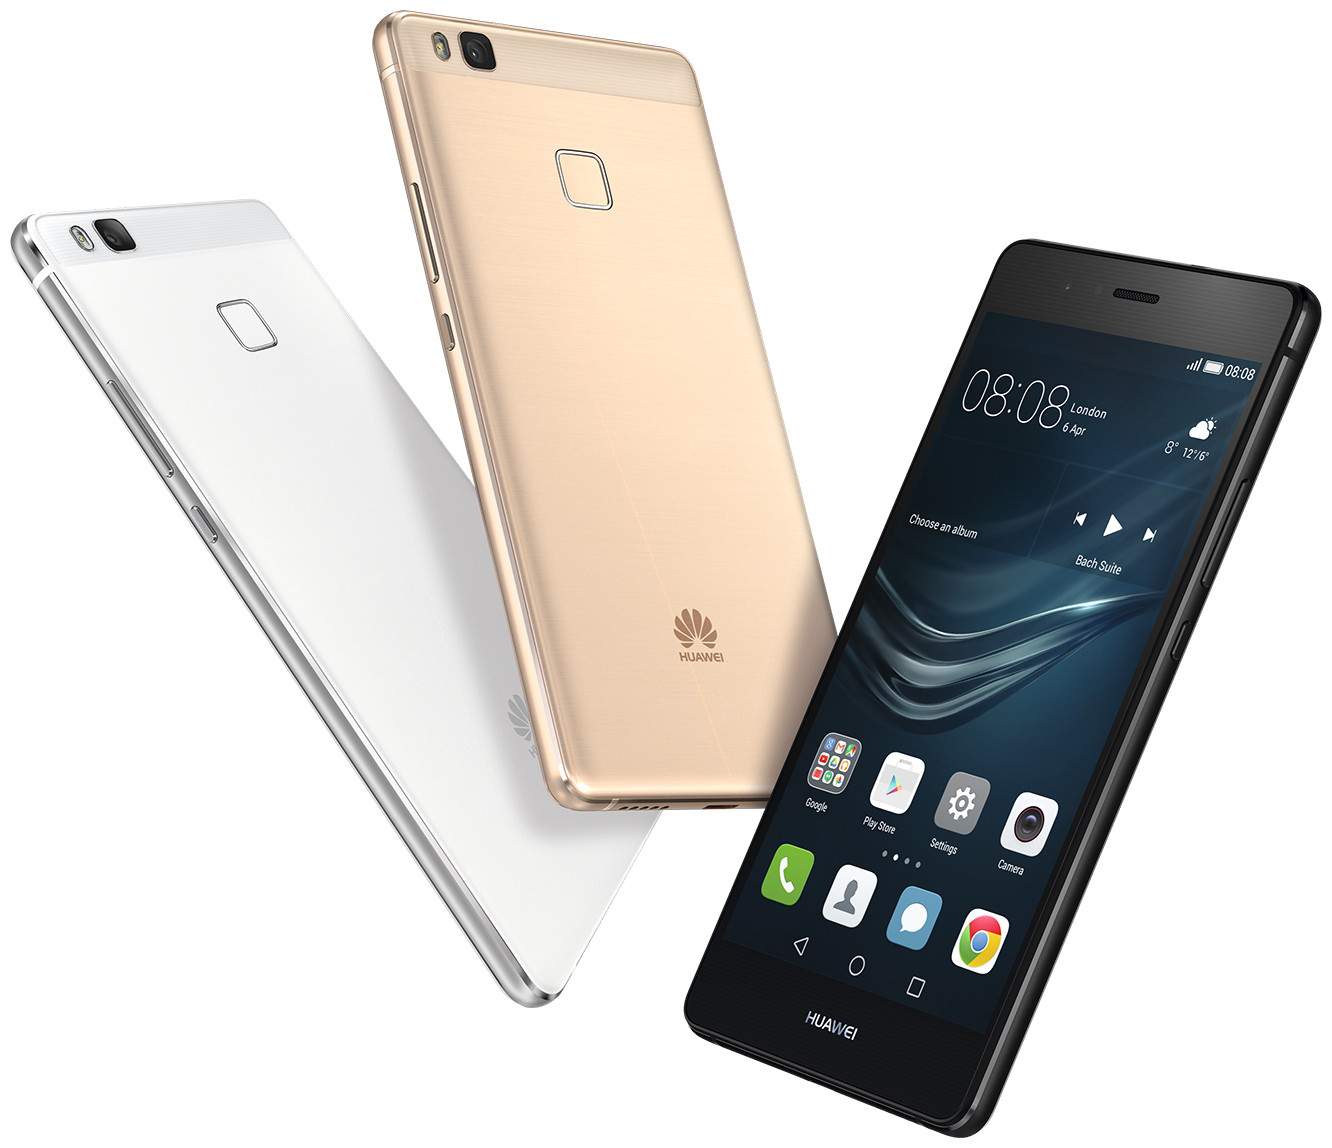 Huawei P9 Lite Vns-l21 2gb Ram - Specs And Price